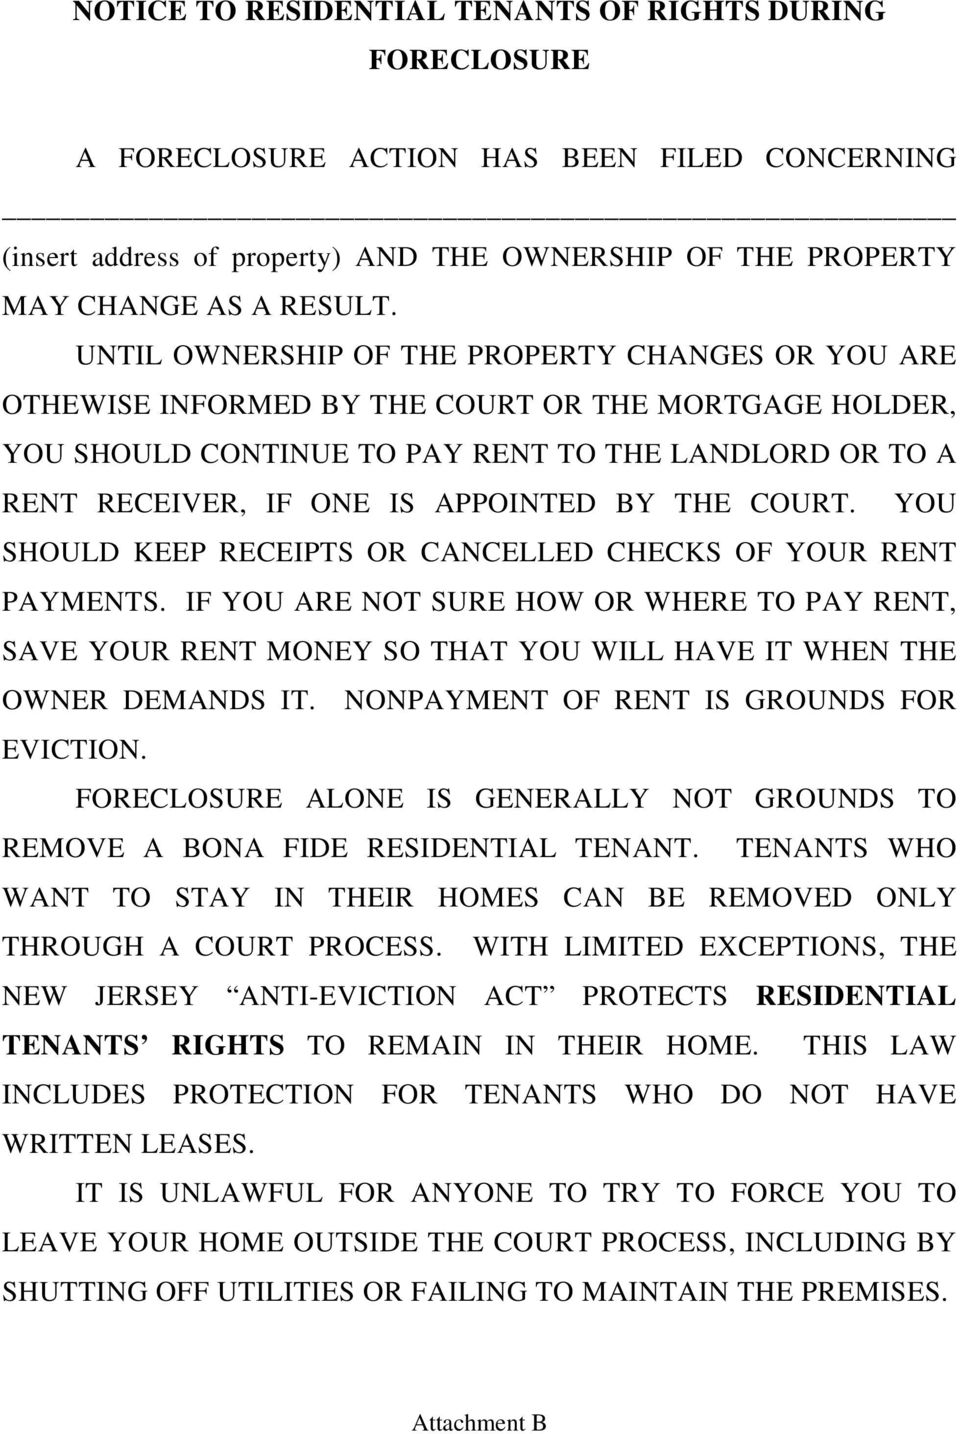 THE COURT. YOU SHOULD KEEP RECEIPTS OR CANCELLED CHECKS OF YOUR RENT PAYMENTS. IF YOU ARE NOT SURE HOW OR WHERE TO PAY RENT, SAVE YOUR RENT MONEY SO THAT YOU WILL HAVE IT WHEN THE OWNER DEMANDS IT.